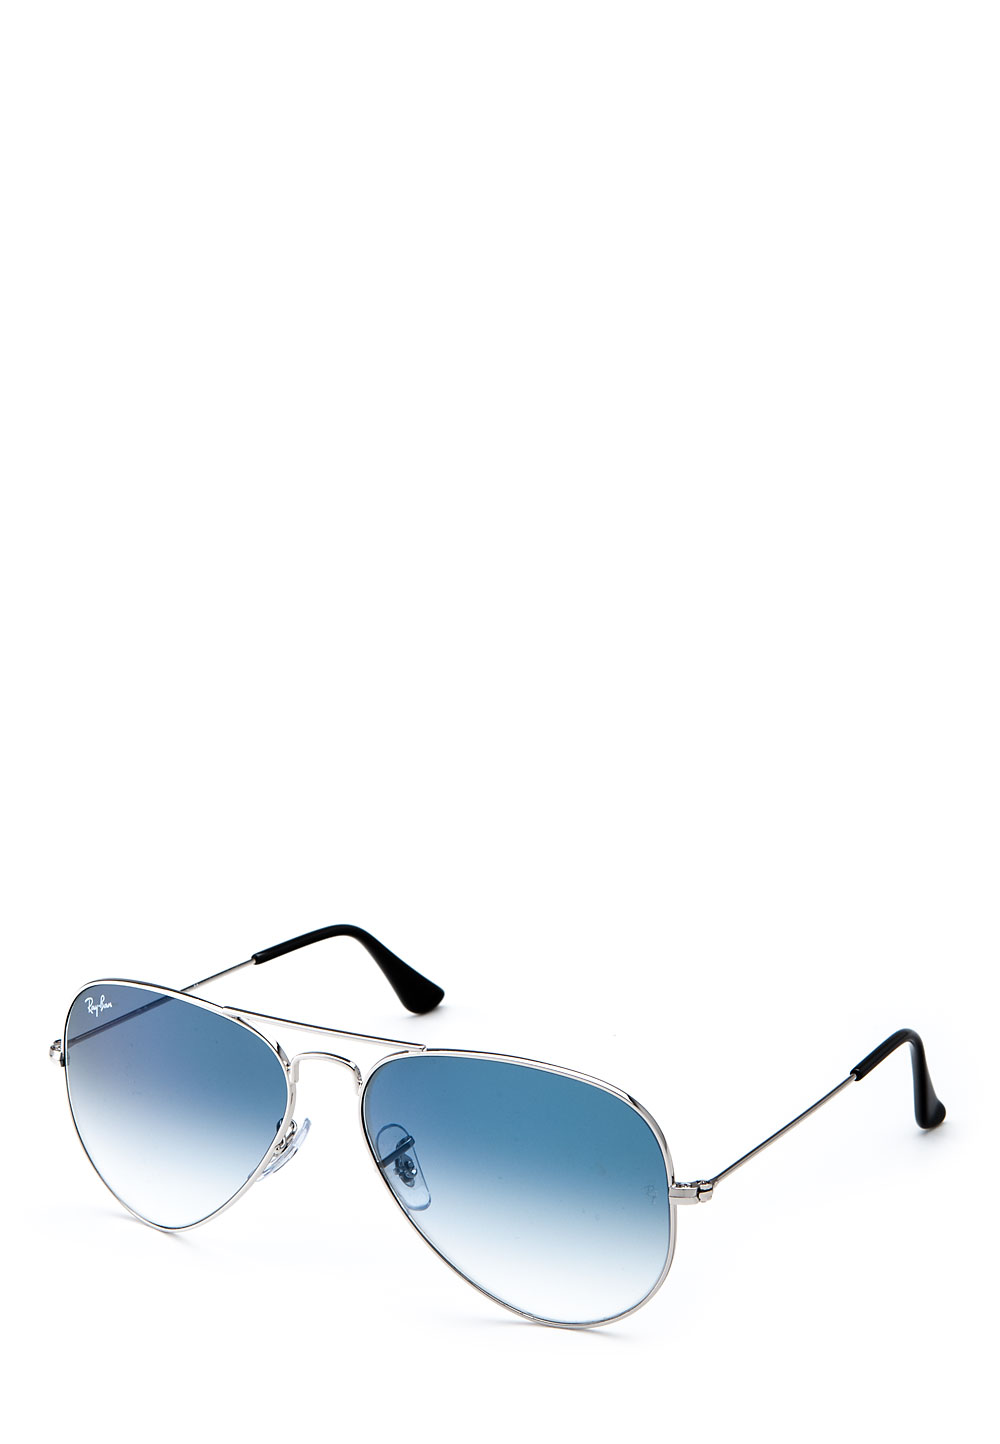 Ray-Ban Sonnenbrille Aviator L, UV 400, silbern | Accessoires | Silber | Ray-Ban